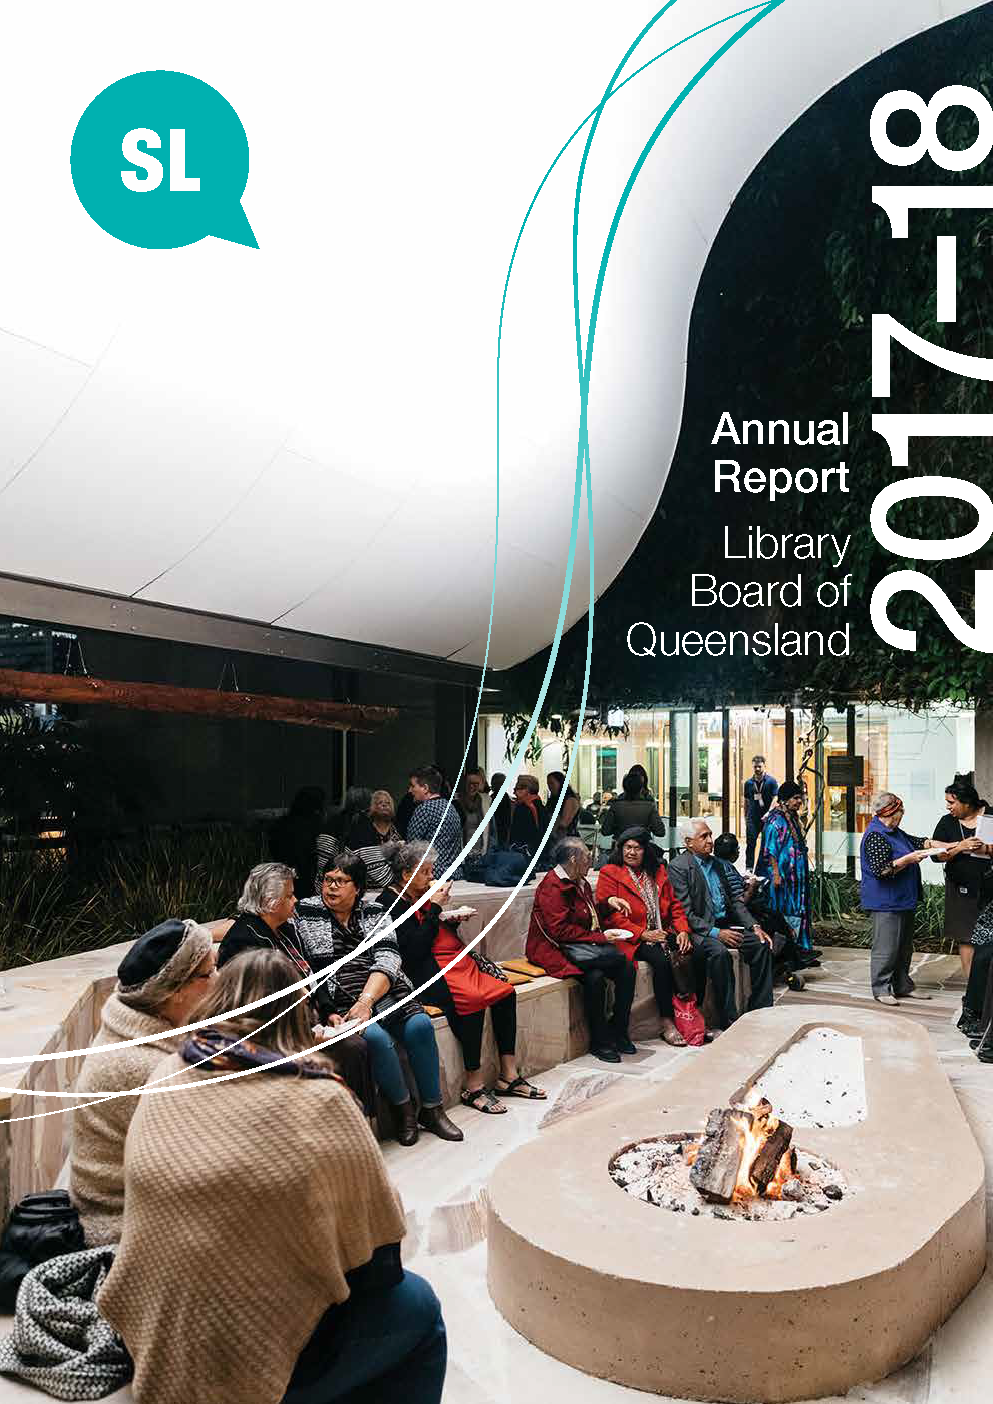 Annual Report of the Library Board of Queensland 2017-18